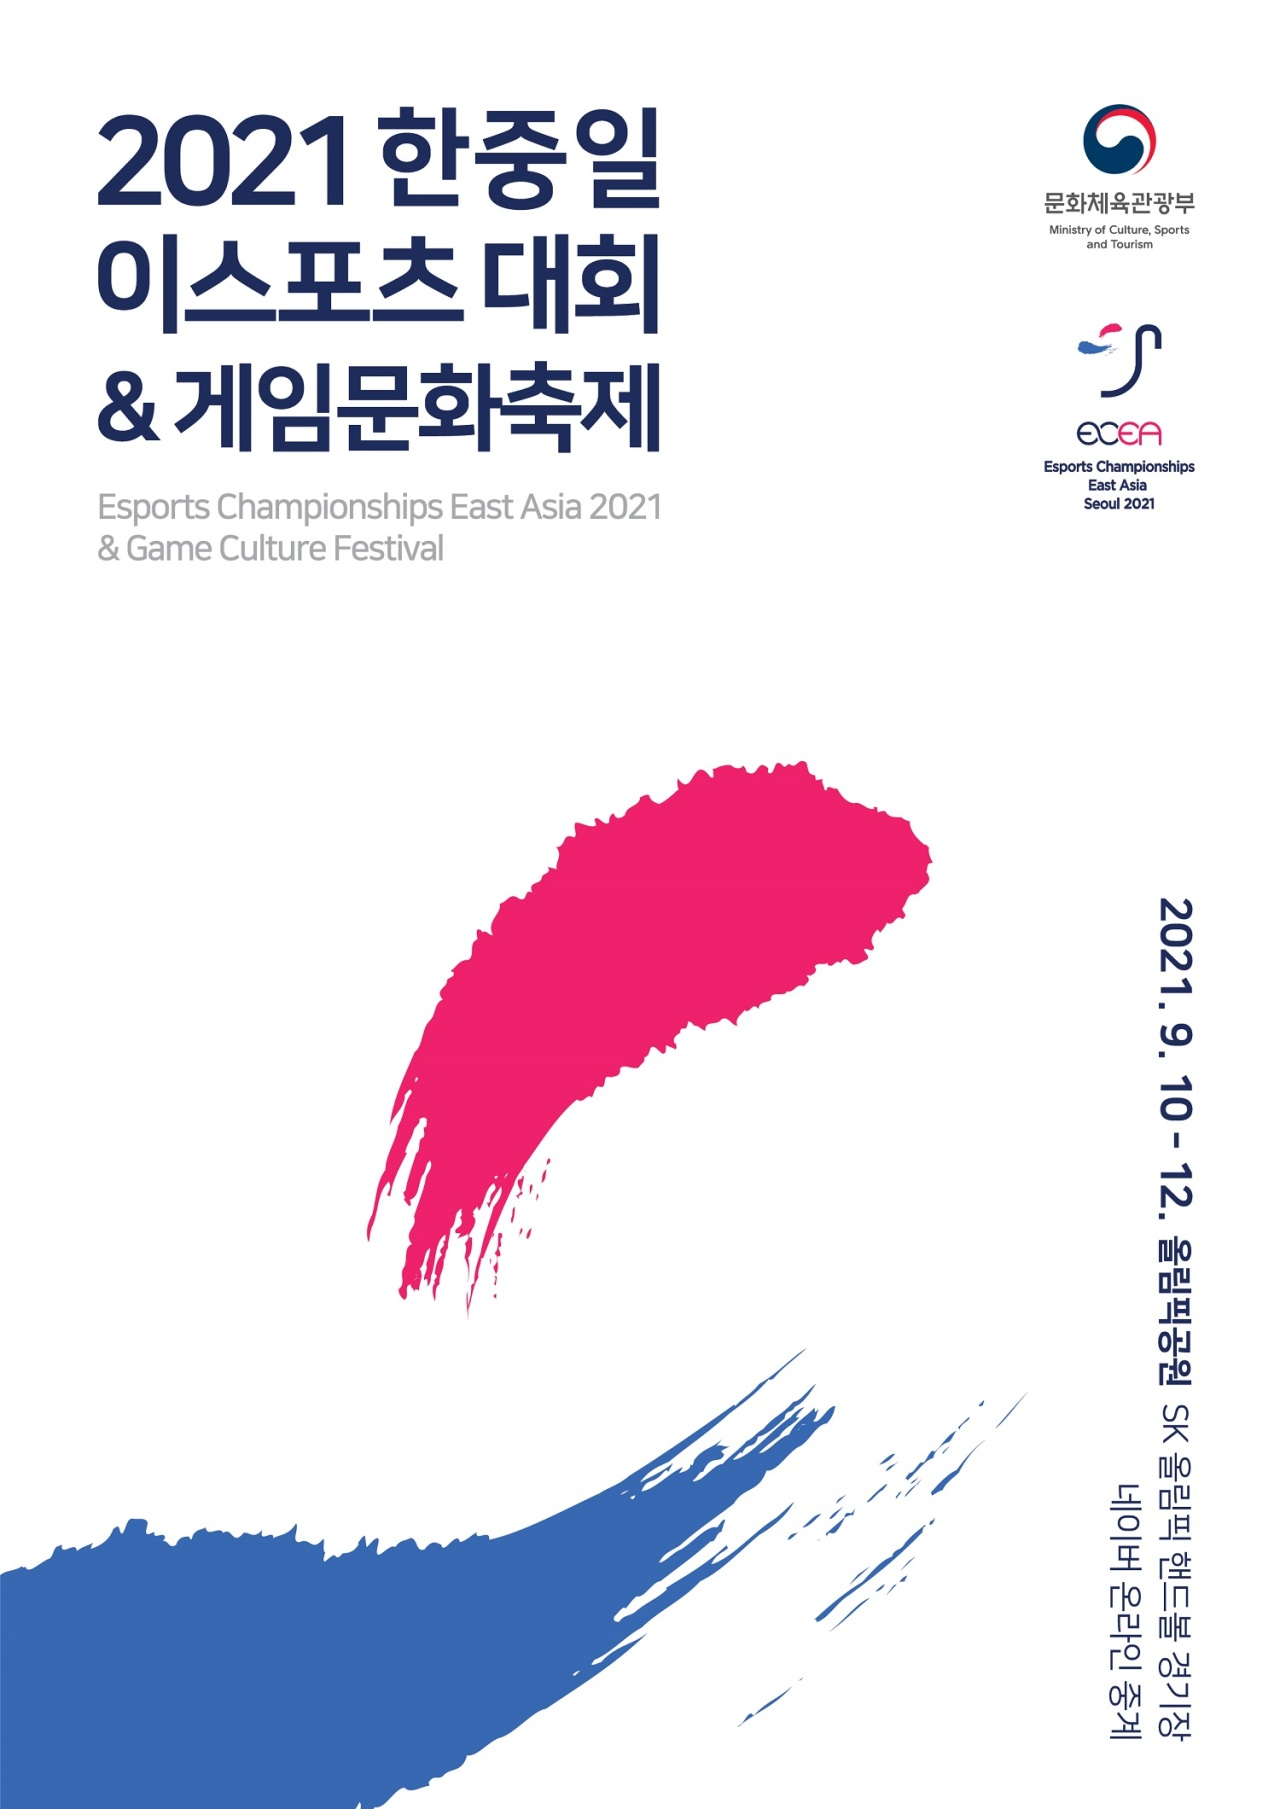 The poster for Esports Championships East Asia 2021 (KOCCA)